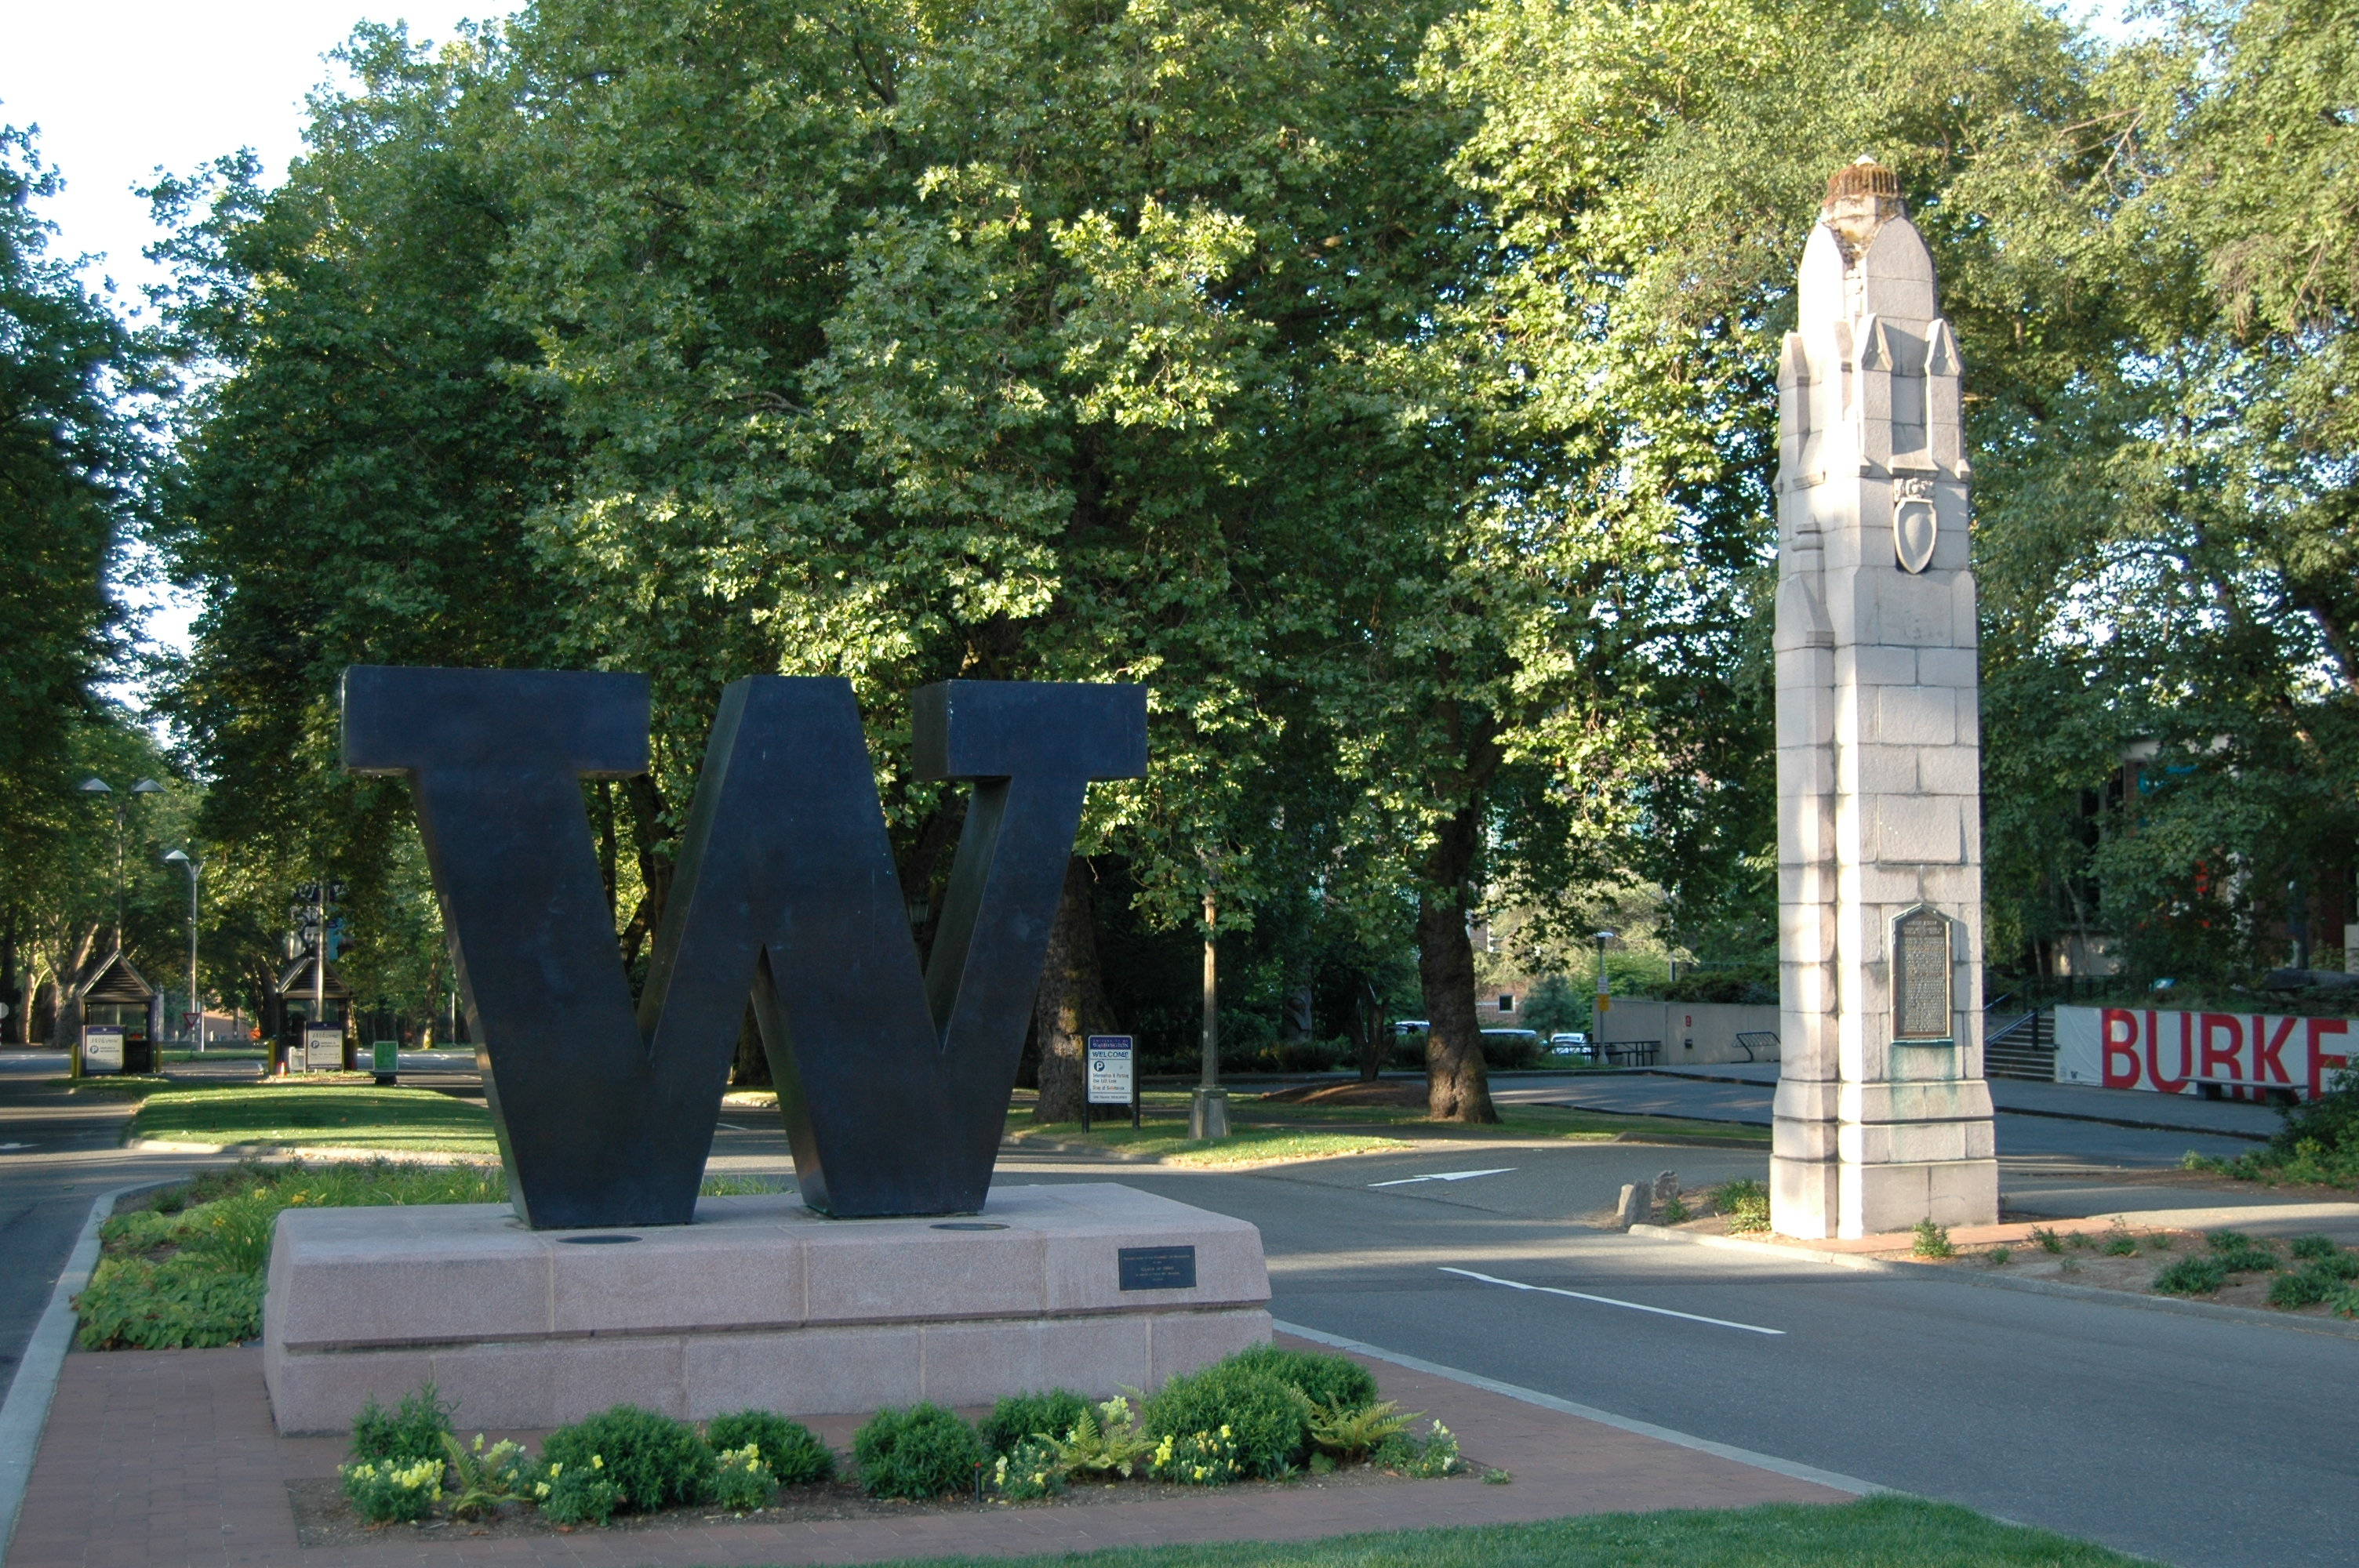 University_of_Washington,_Seattle,_WA